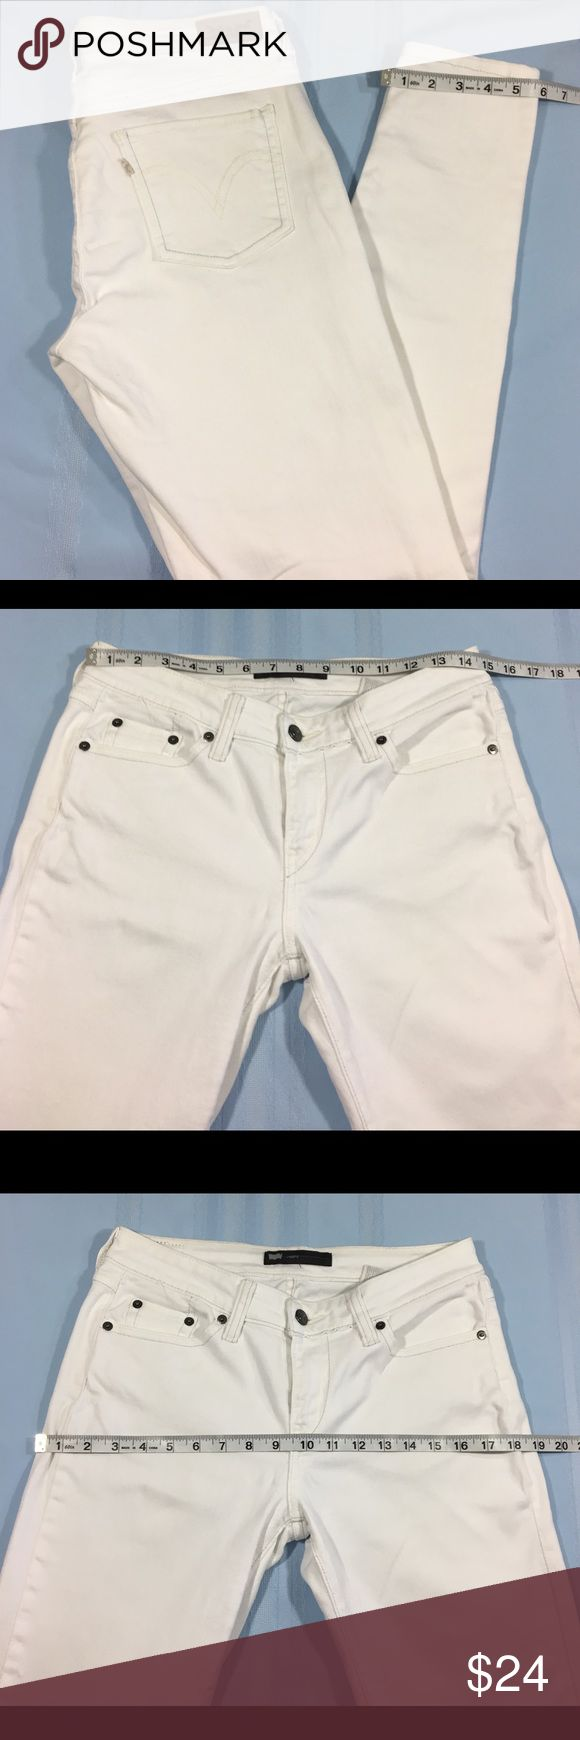 LEVI'S Women Jeans Leggins SZ 29-30 Strech Skinny Excellent condition see pictures for more details and measures Levi's Jeans Skinny